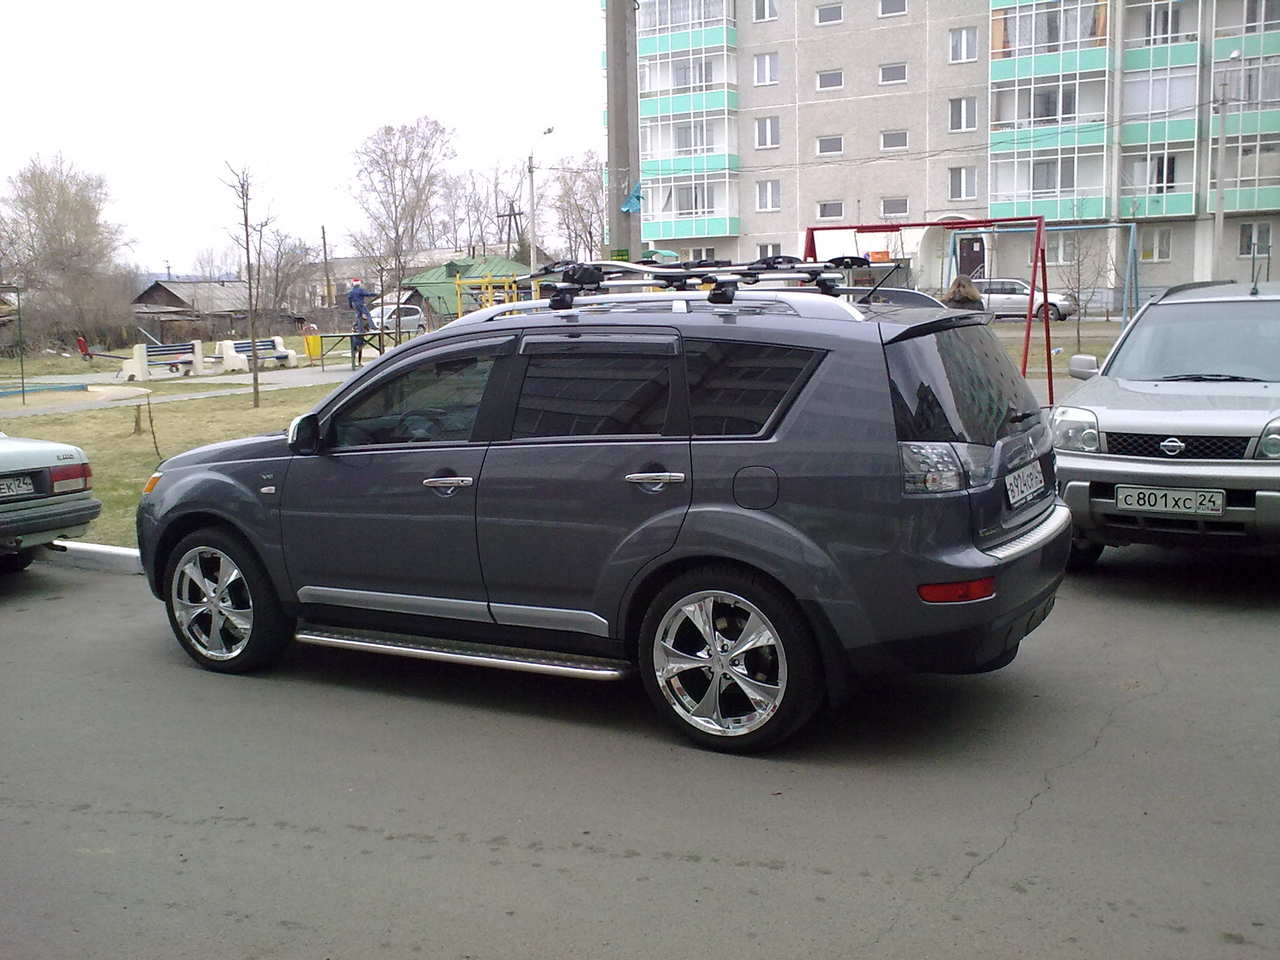 2008 mitsubishi outlander photos 3 0 gasoline automatic for sale. Black Bedroom Furniture Sets. Home Design Ideas